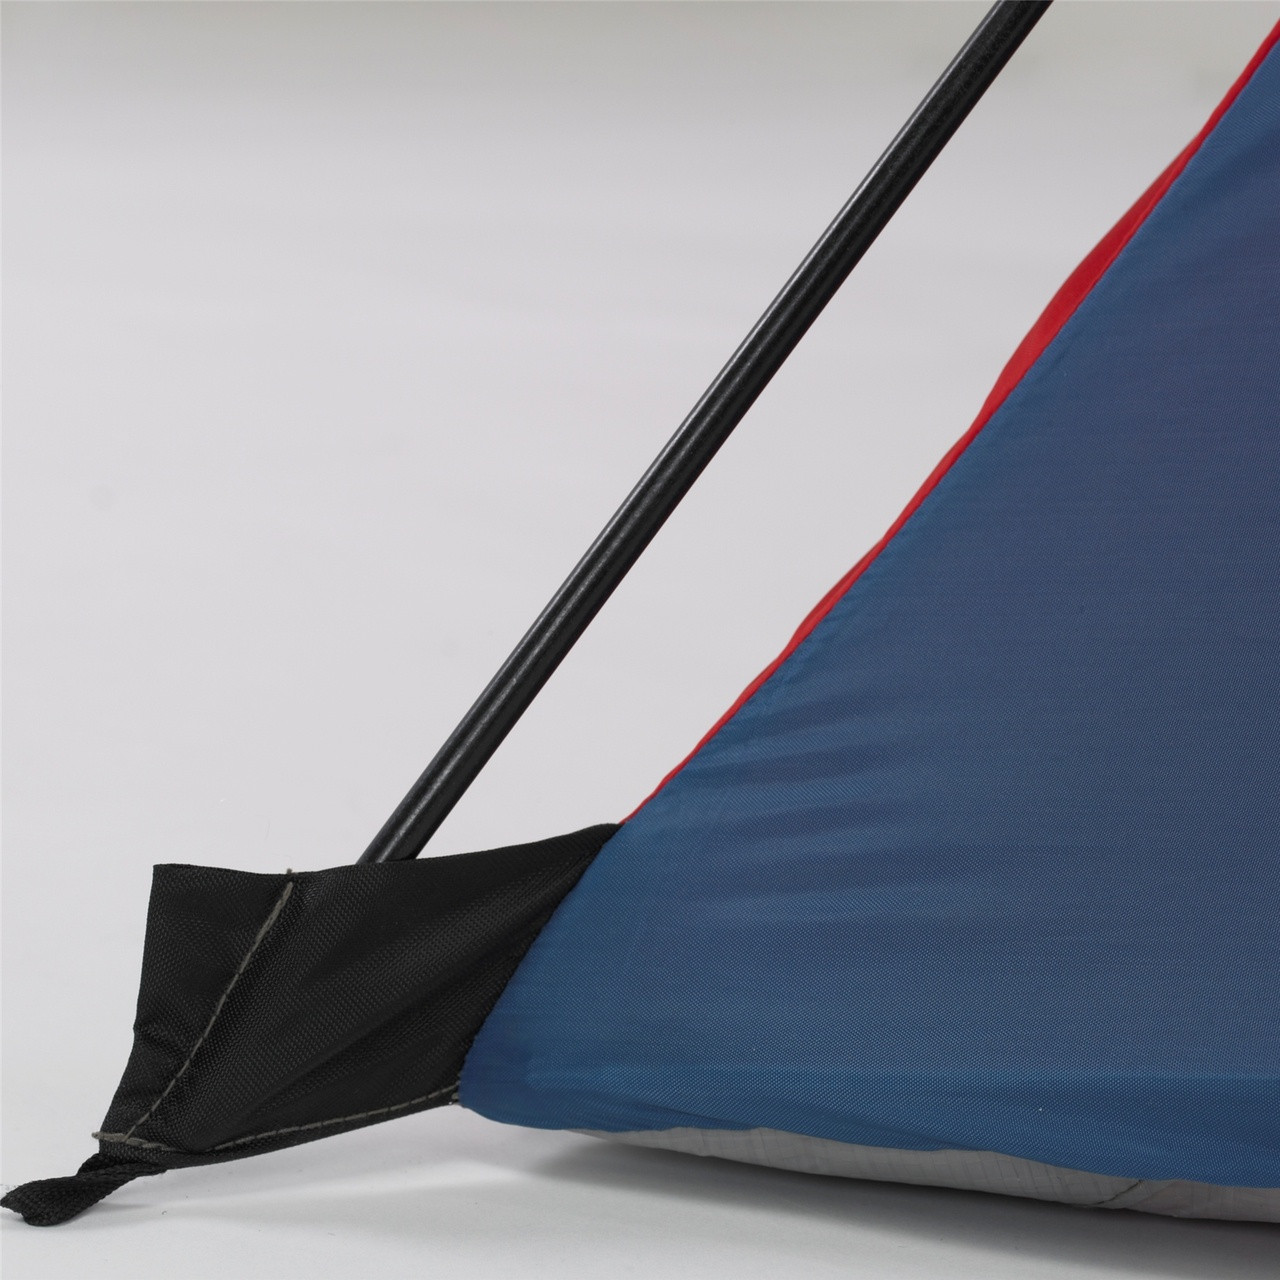 Close up view of a pole connecting to the tent body in the pole insertion hub on a corner of the Wenzel Sprout 2 tent